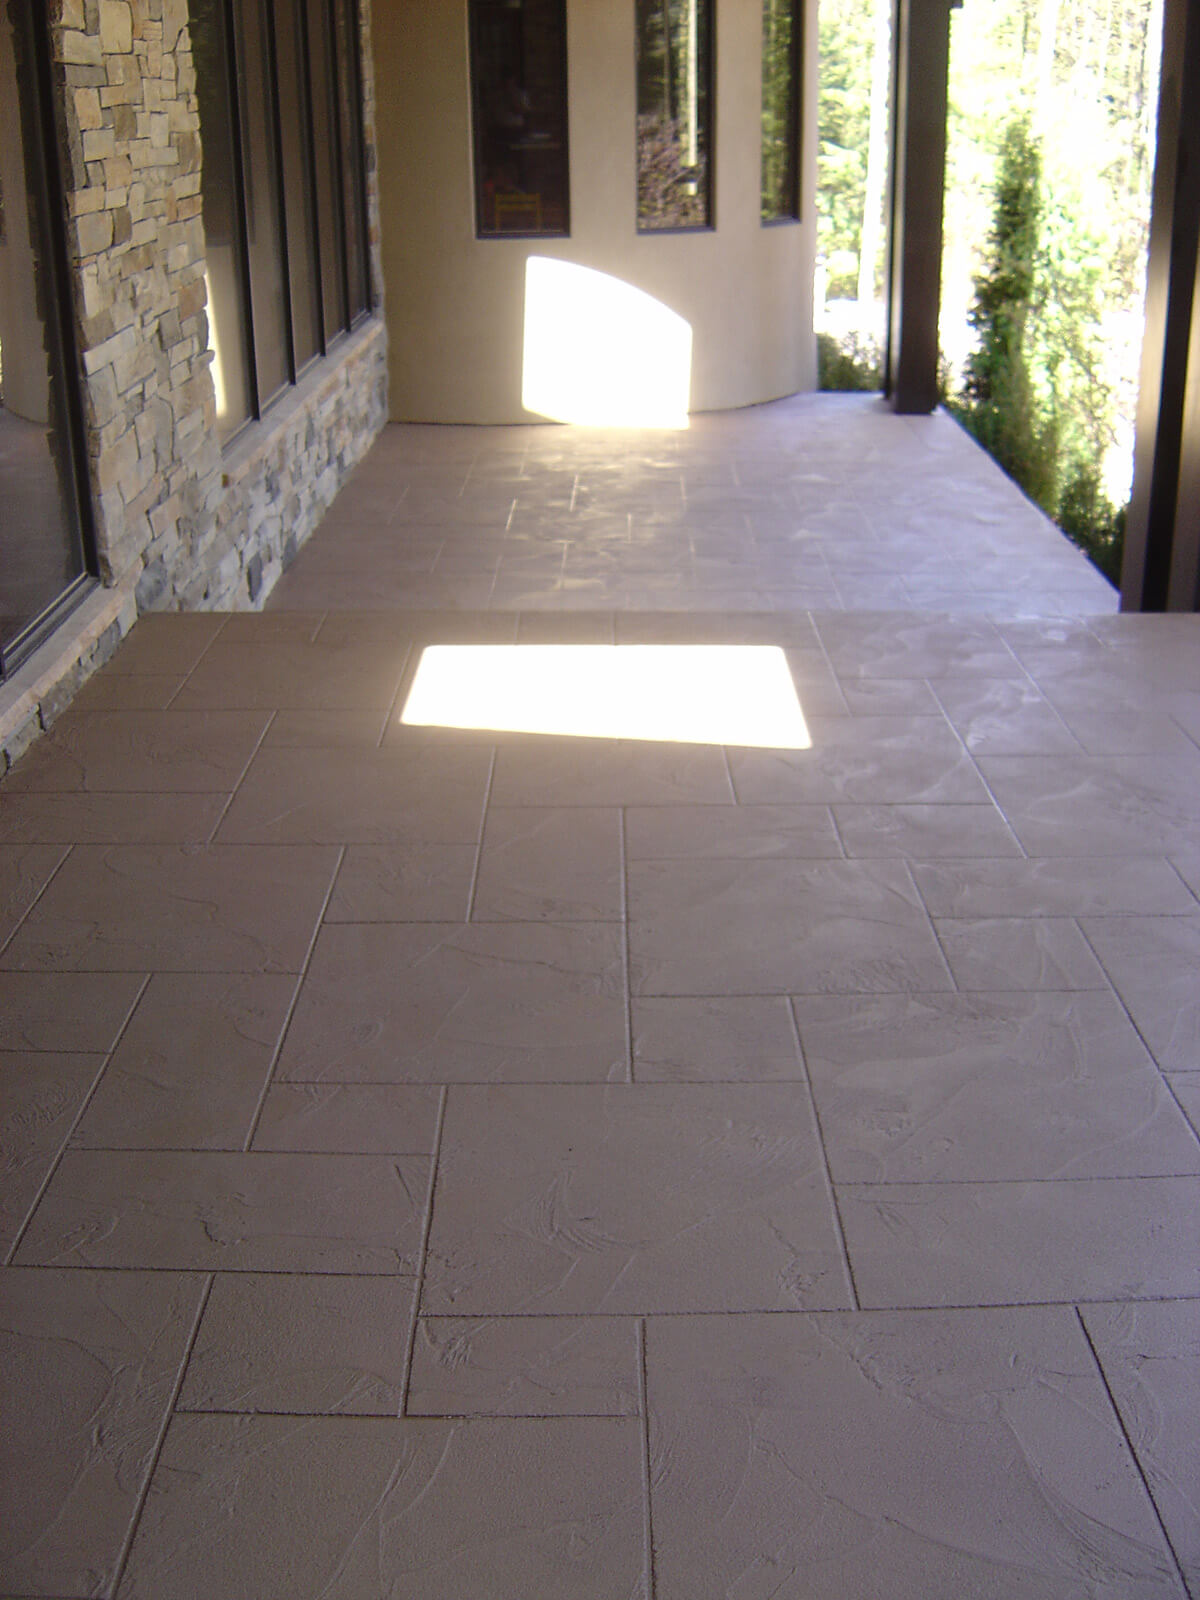 Decorative Concrete Overlay - Polymer cement overlay